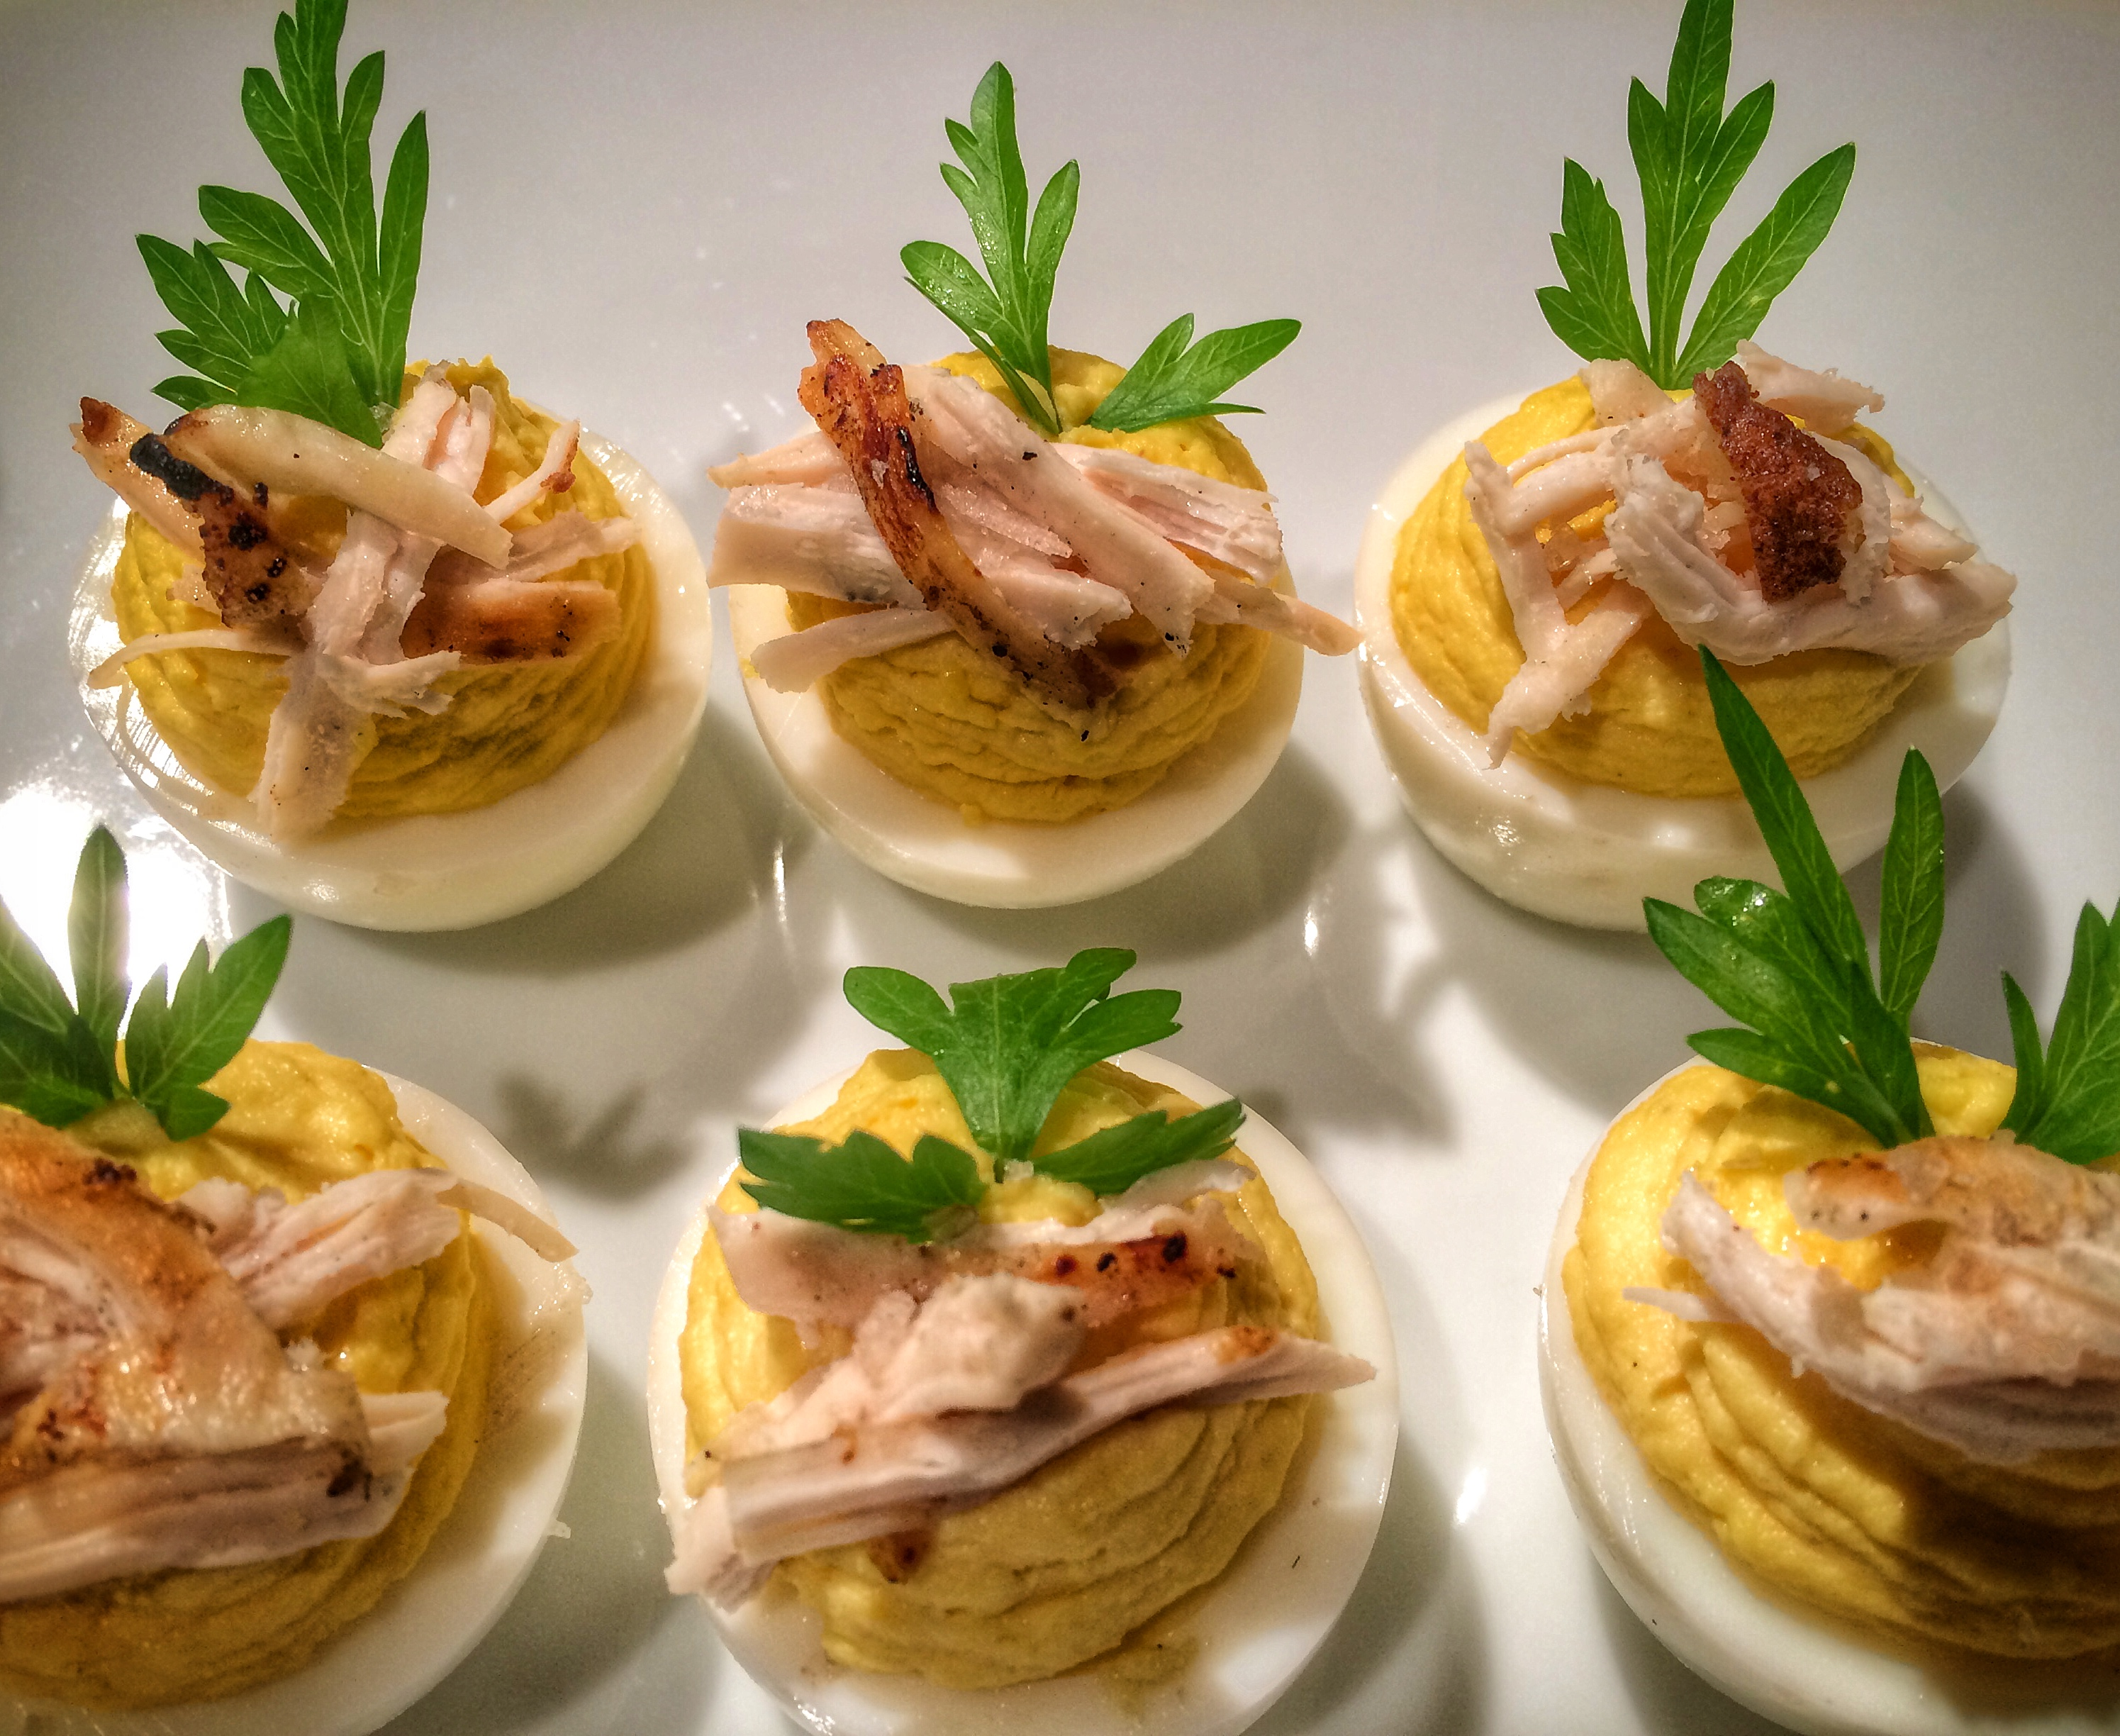 BLC Deviled Eggs with Smoked Chicken Breast & Parsley